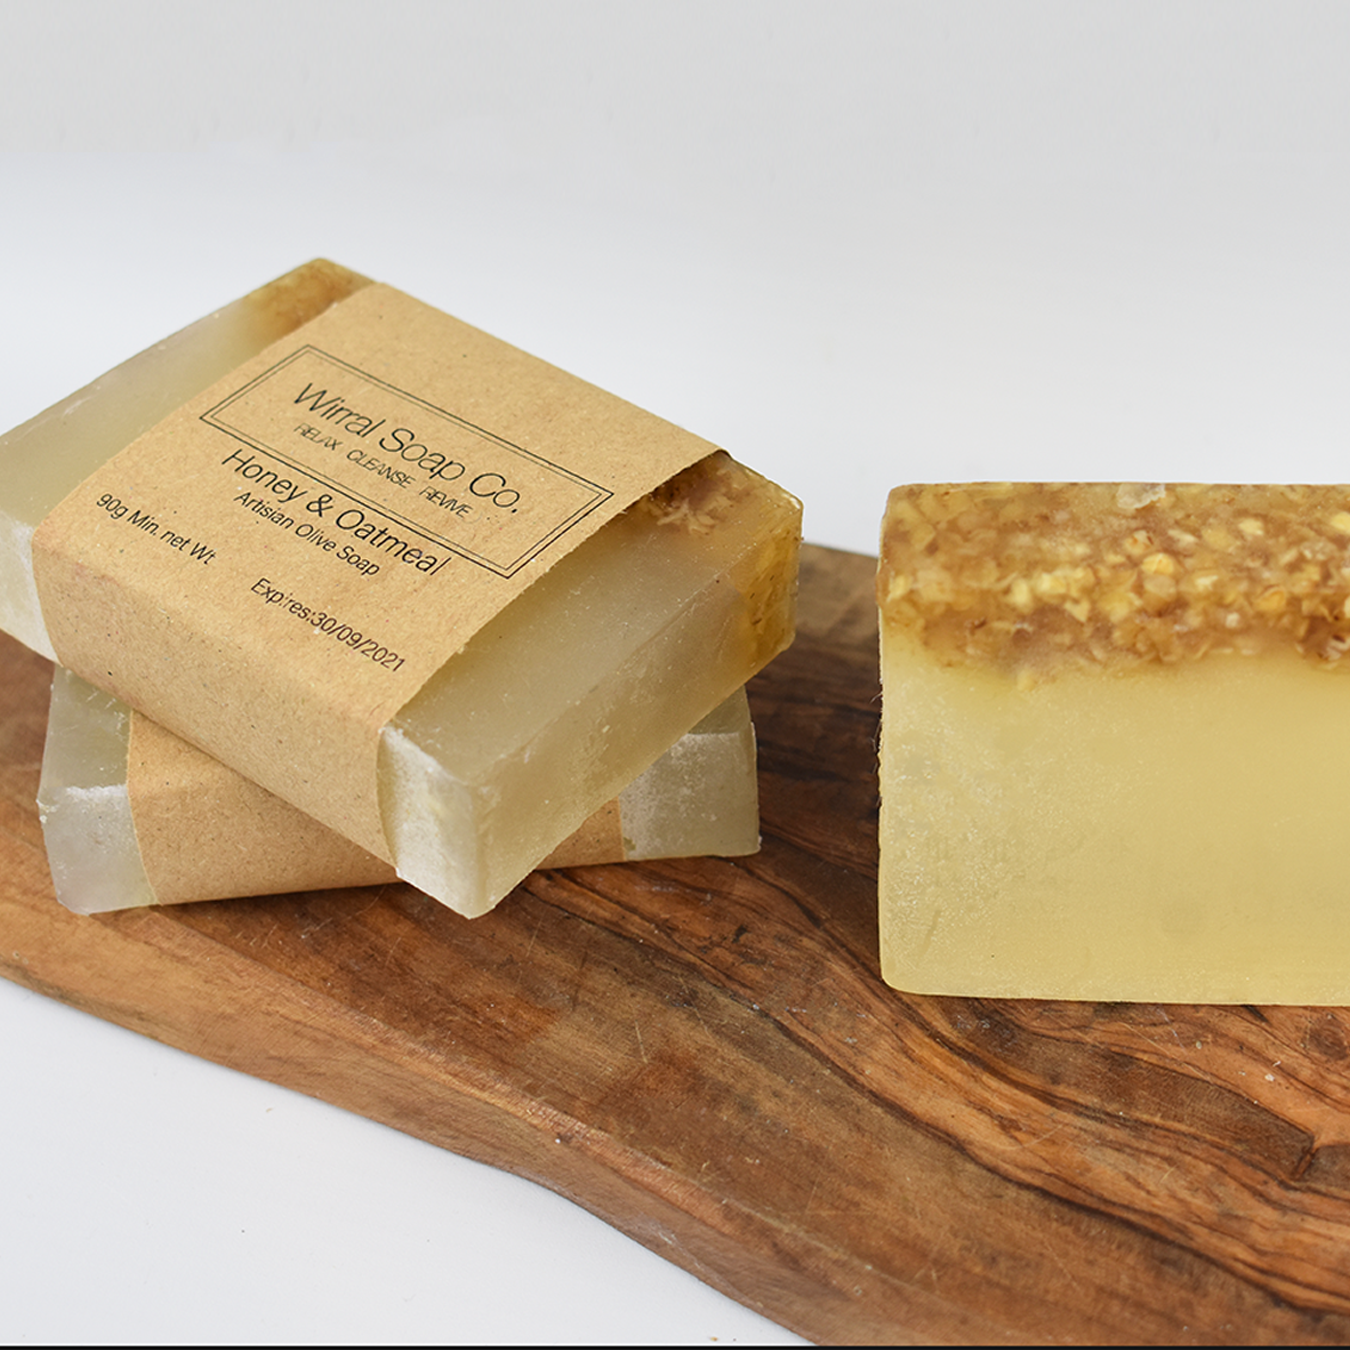 'Wild & Natural' Hand Crafted Soaps